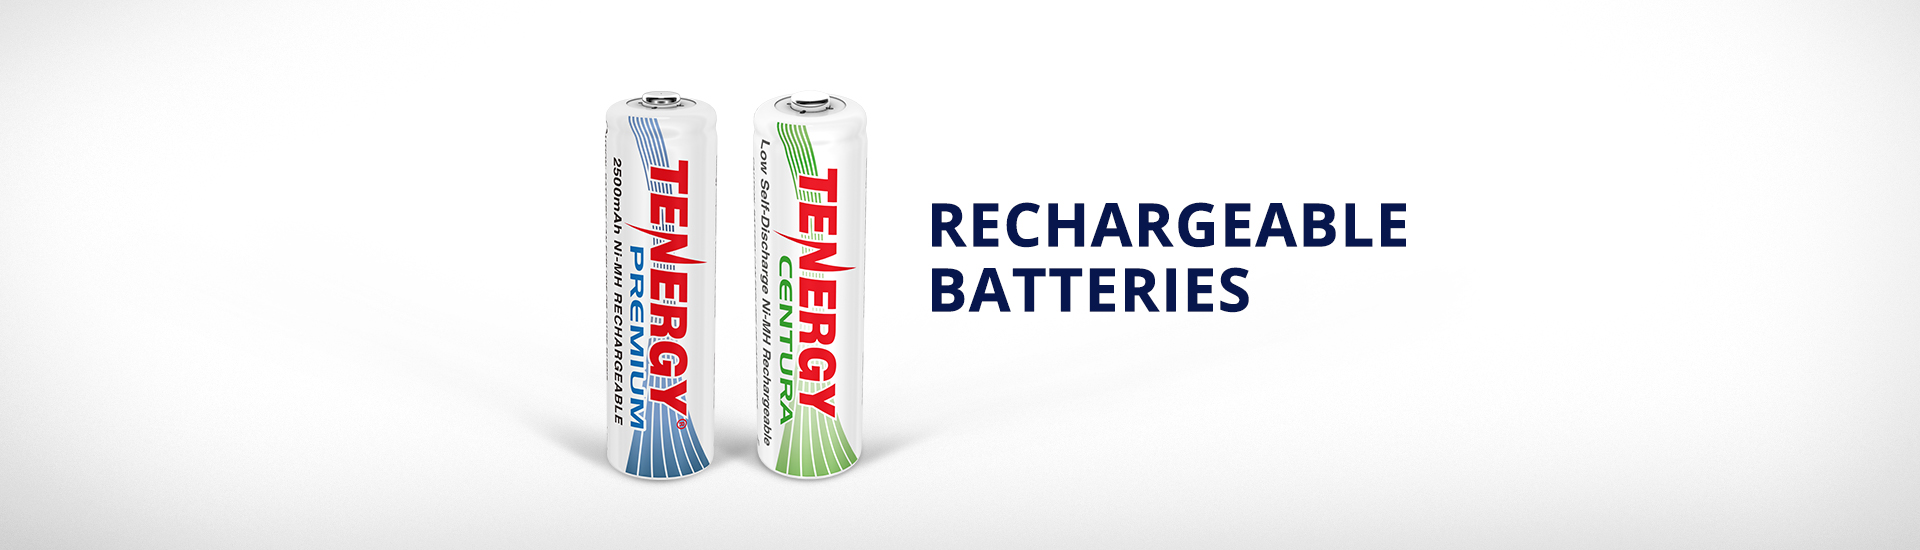 rechargeable-batteries.jpg